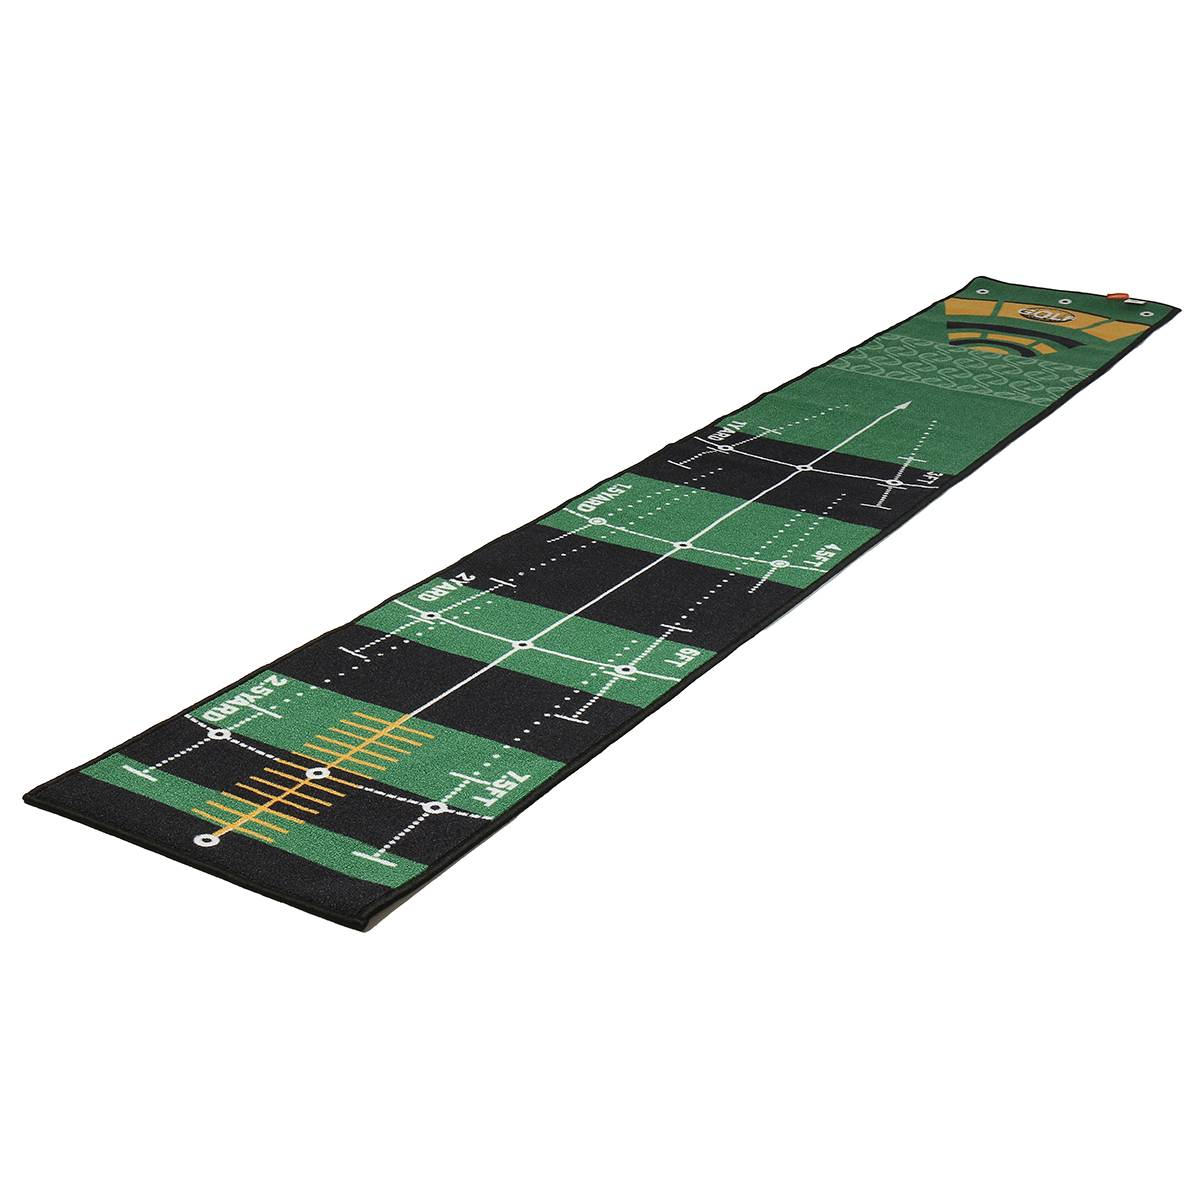 118inch Indoor Training Golf Putting Mat Golf Clubs Golf Training Tools Smooth Practice Putting Carpet For Indoor Home Office